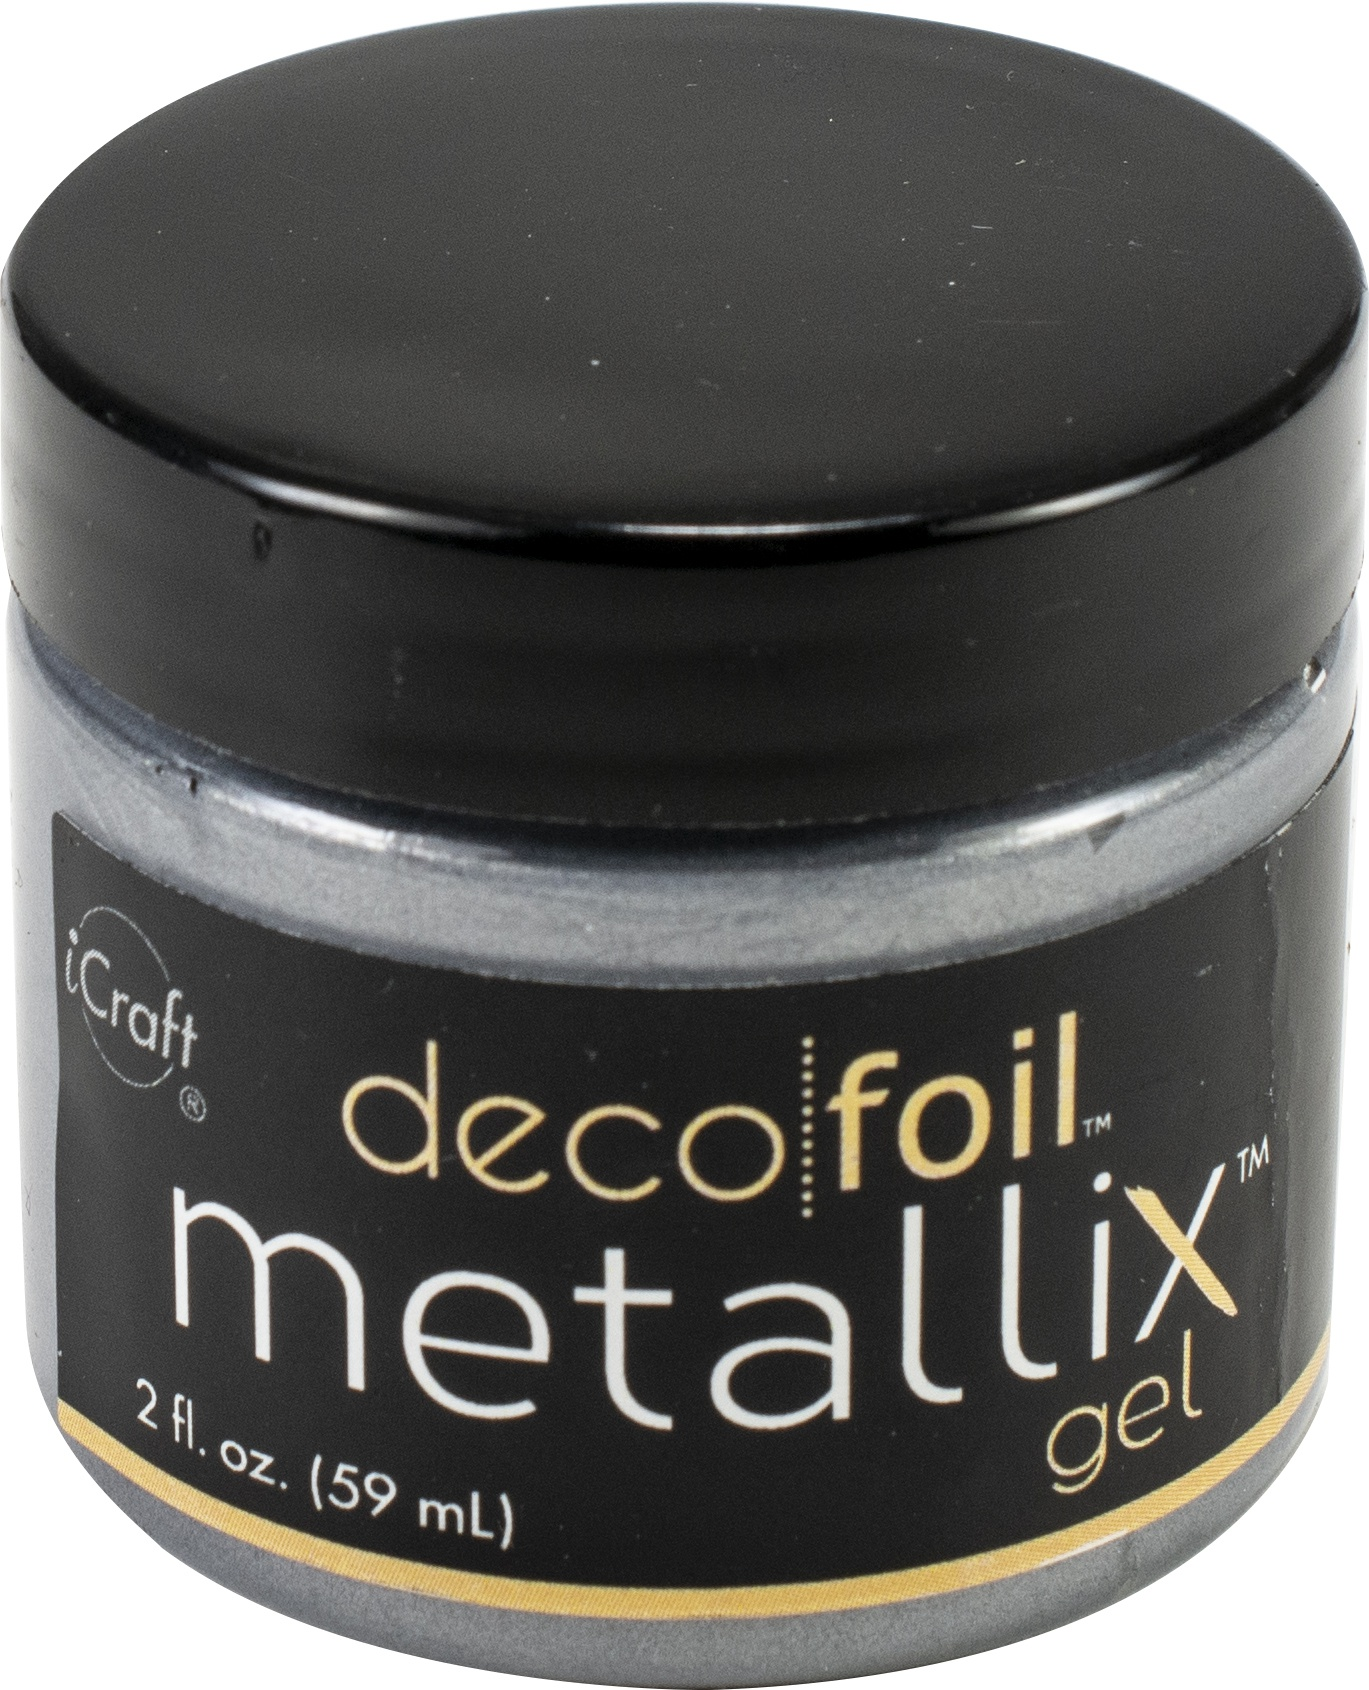 Deco Foil Metallix Gel 2oz-Glazed Pewter